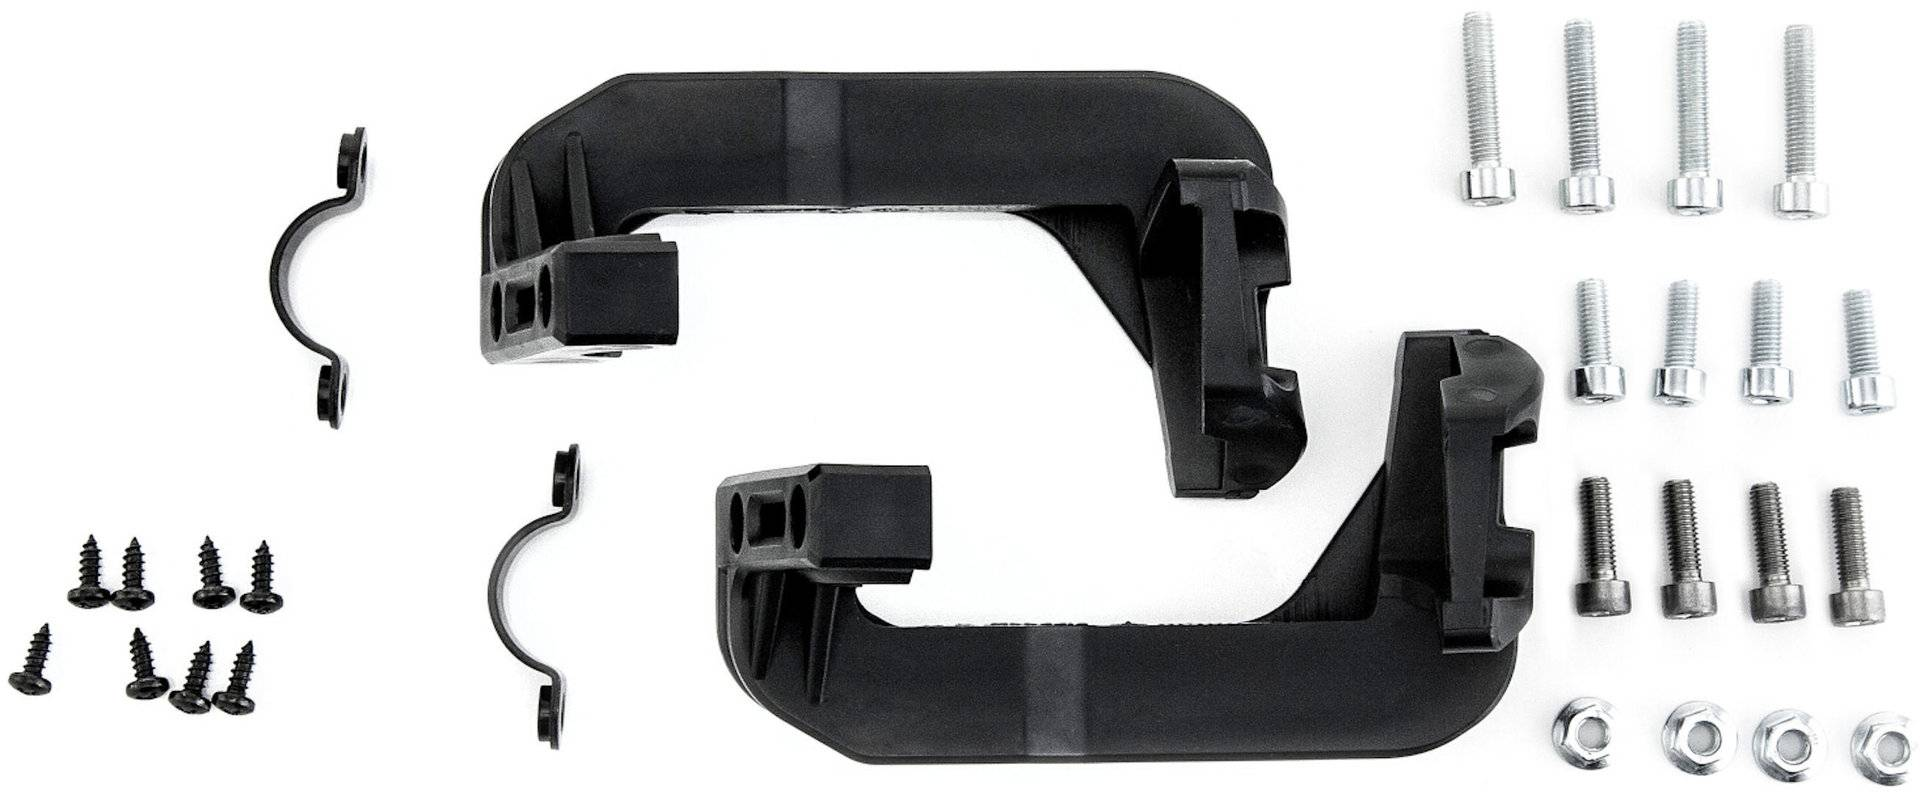 Acerbis X-Ultimate Mounting Kit, black, black, Size One Size from Acerbis